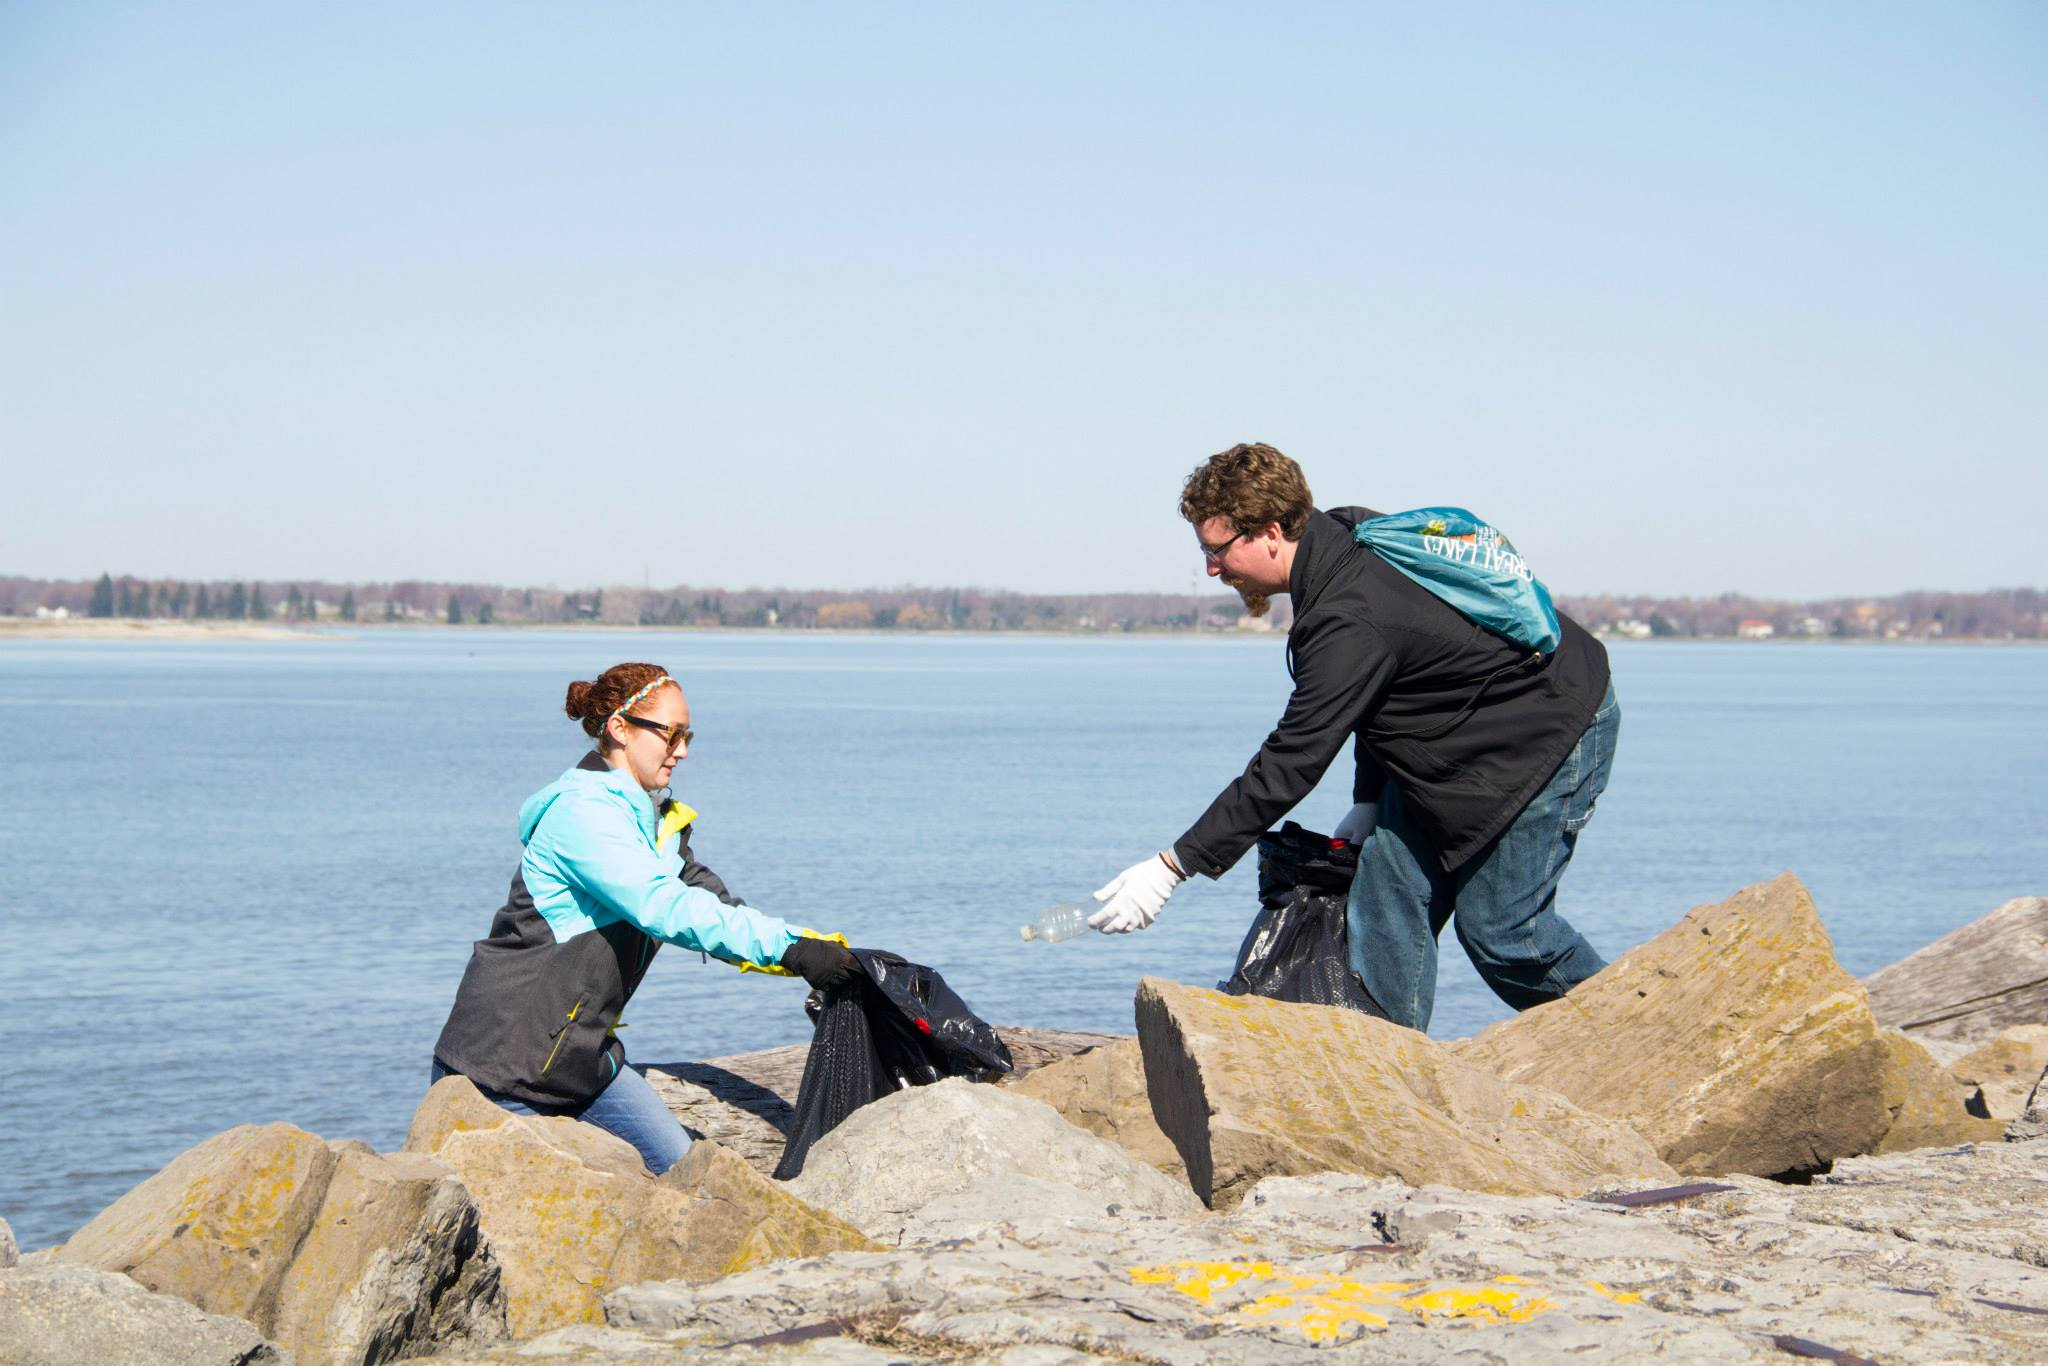 Caption: Photo Credit: Buffalo Niagara Riverkeeper / Spring Shoreline Sweep 2016, Credit: Photo Credit: Buffalo Niagara Riverkeeper / Spring Shoreline Sweep 2016